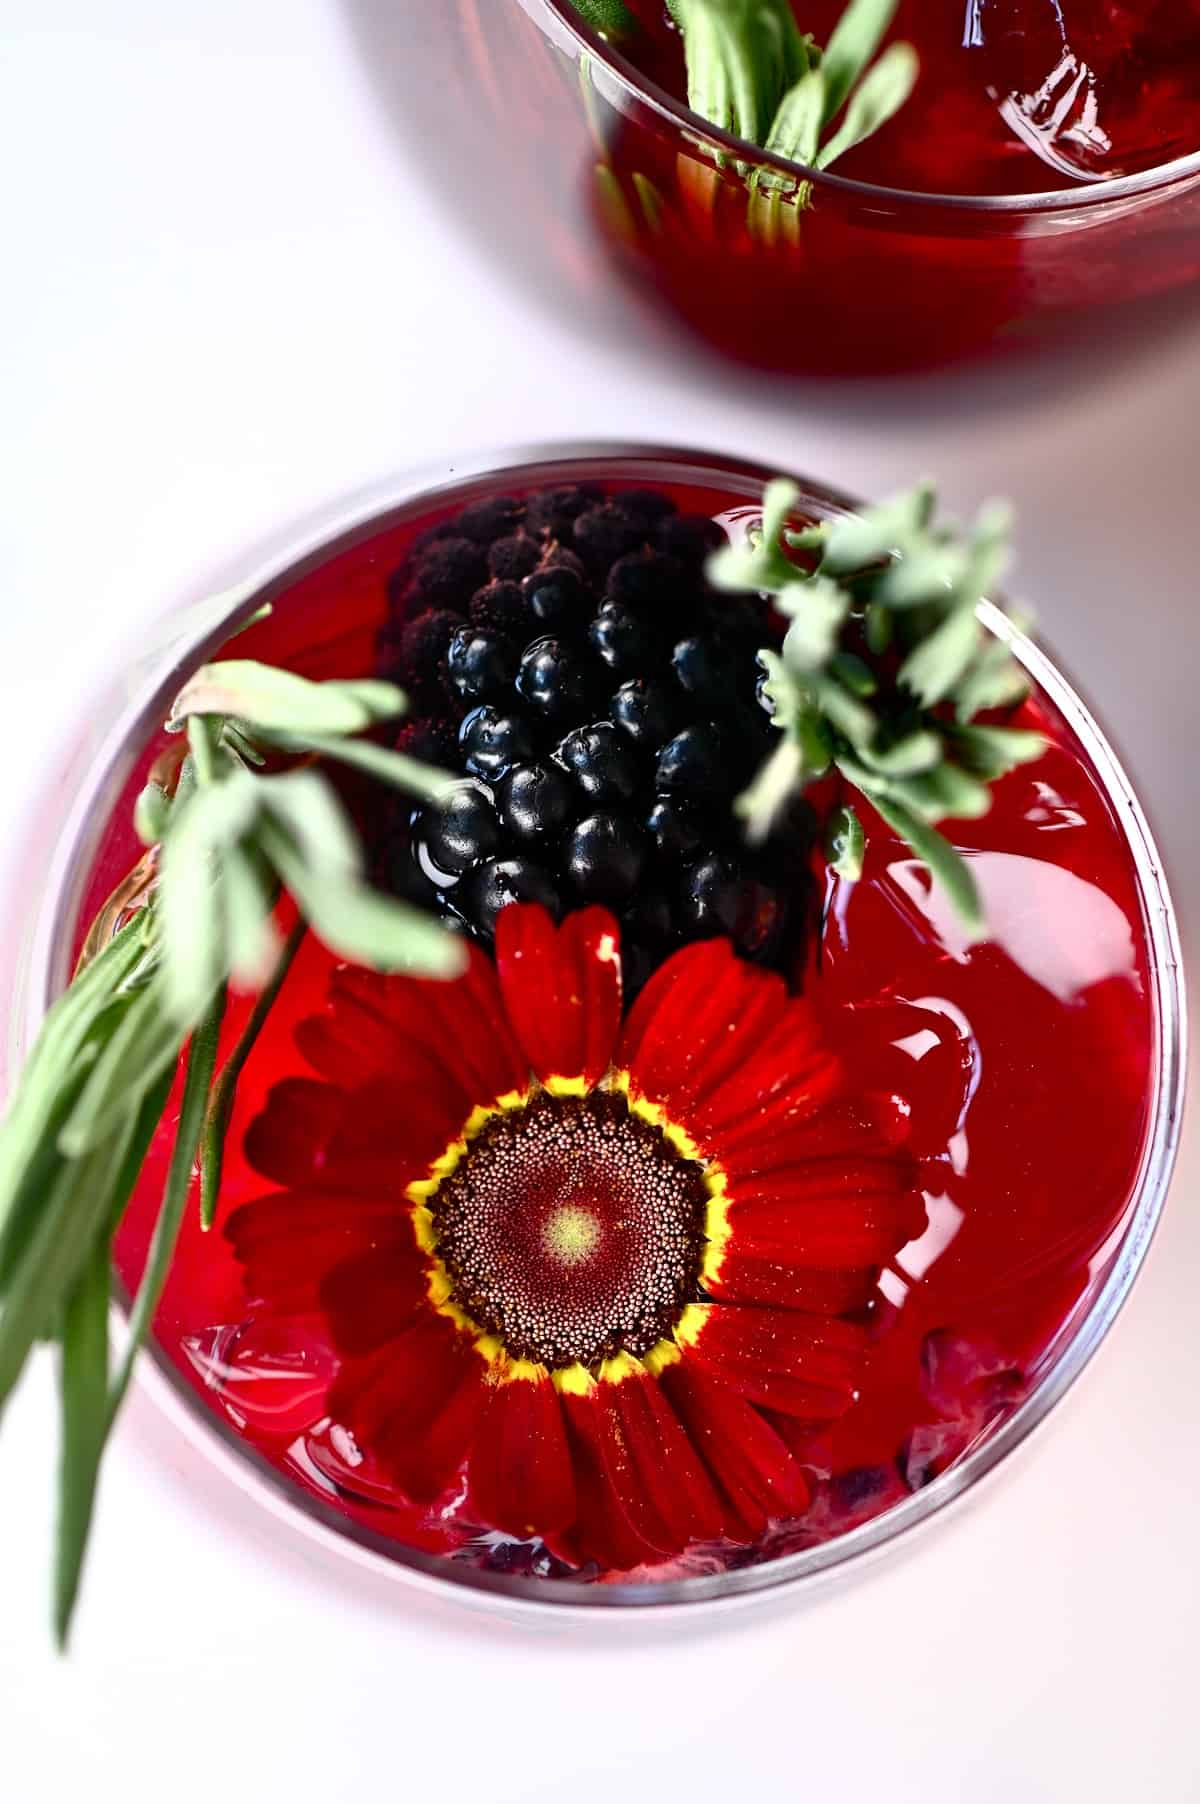 Top view of a blackberry iced tea in a glass decorated with edible flowers and herbs